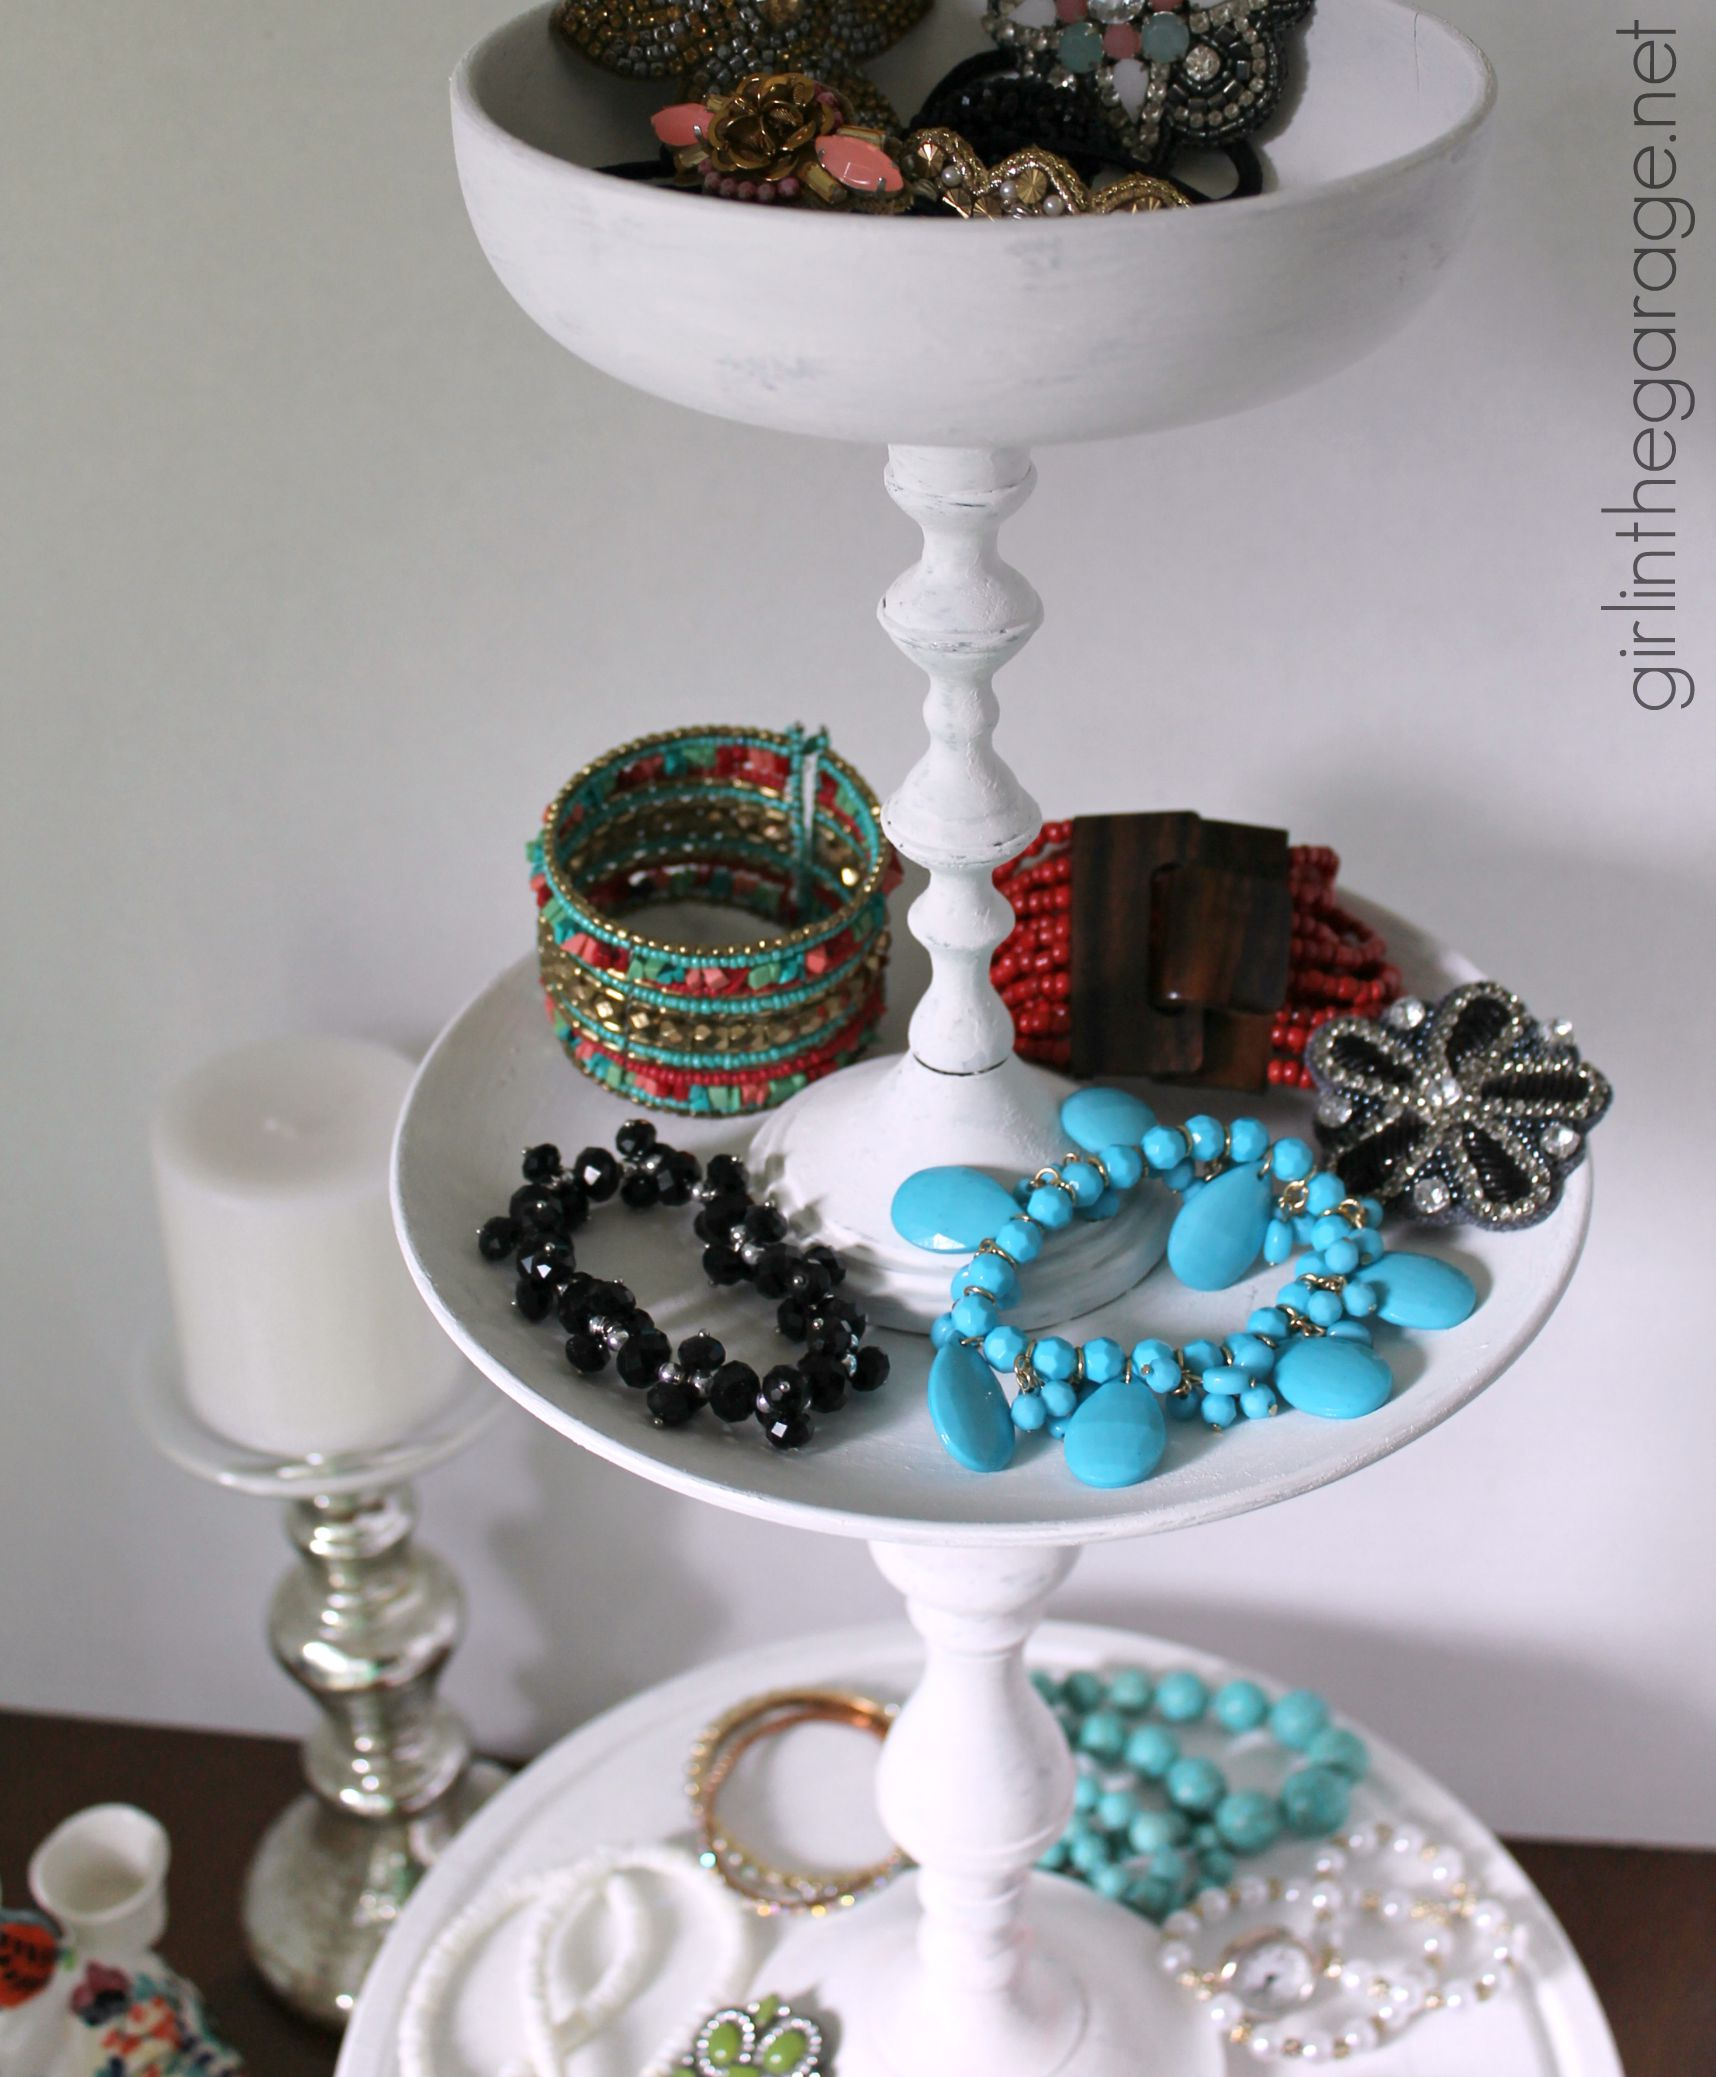 DIY Tiered Display Stand from Thrift Store Pieces - Trash ...